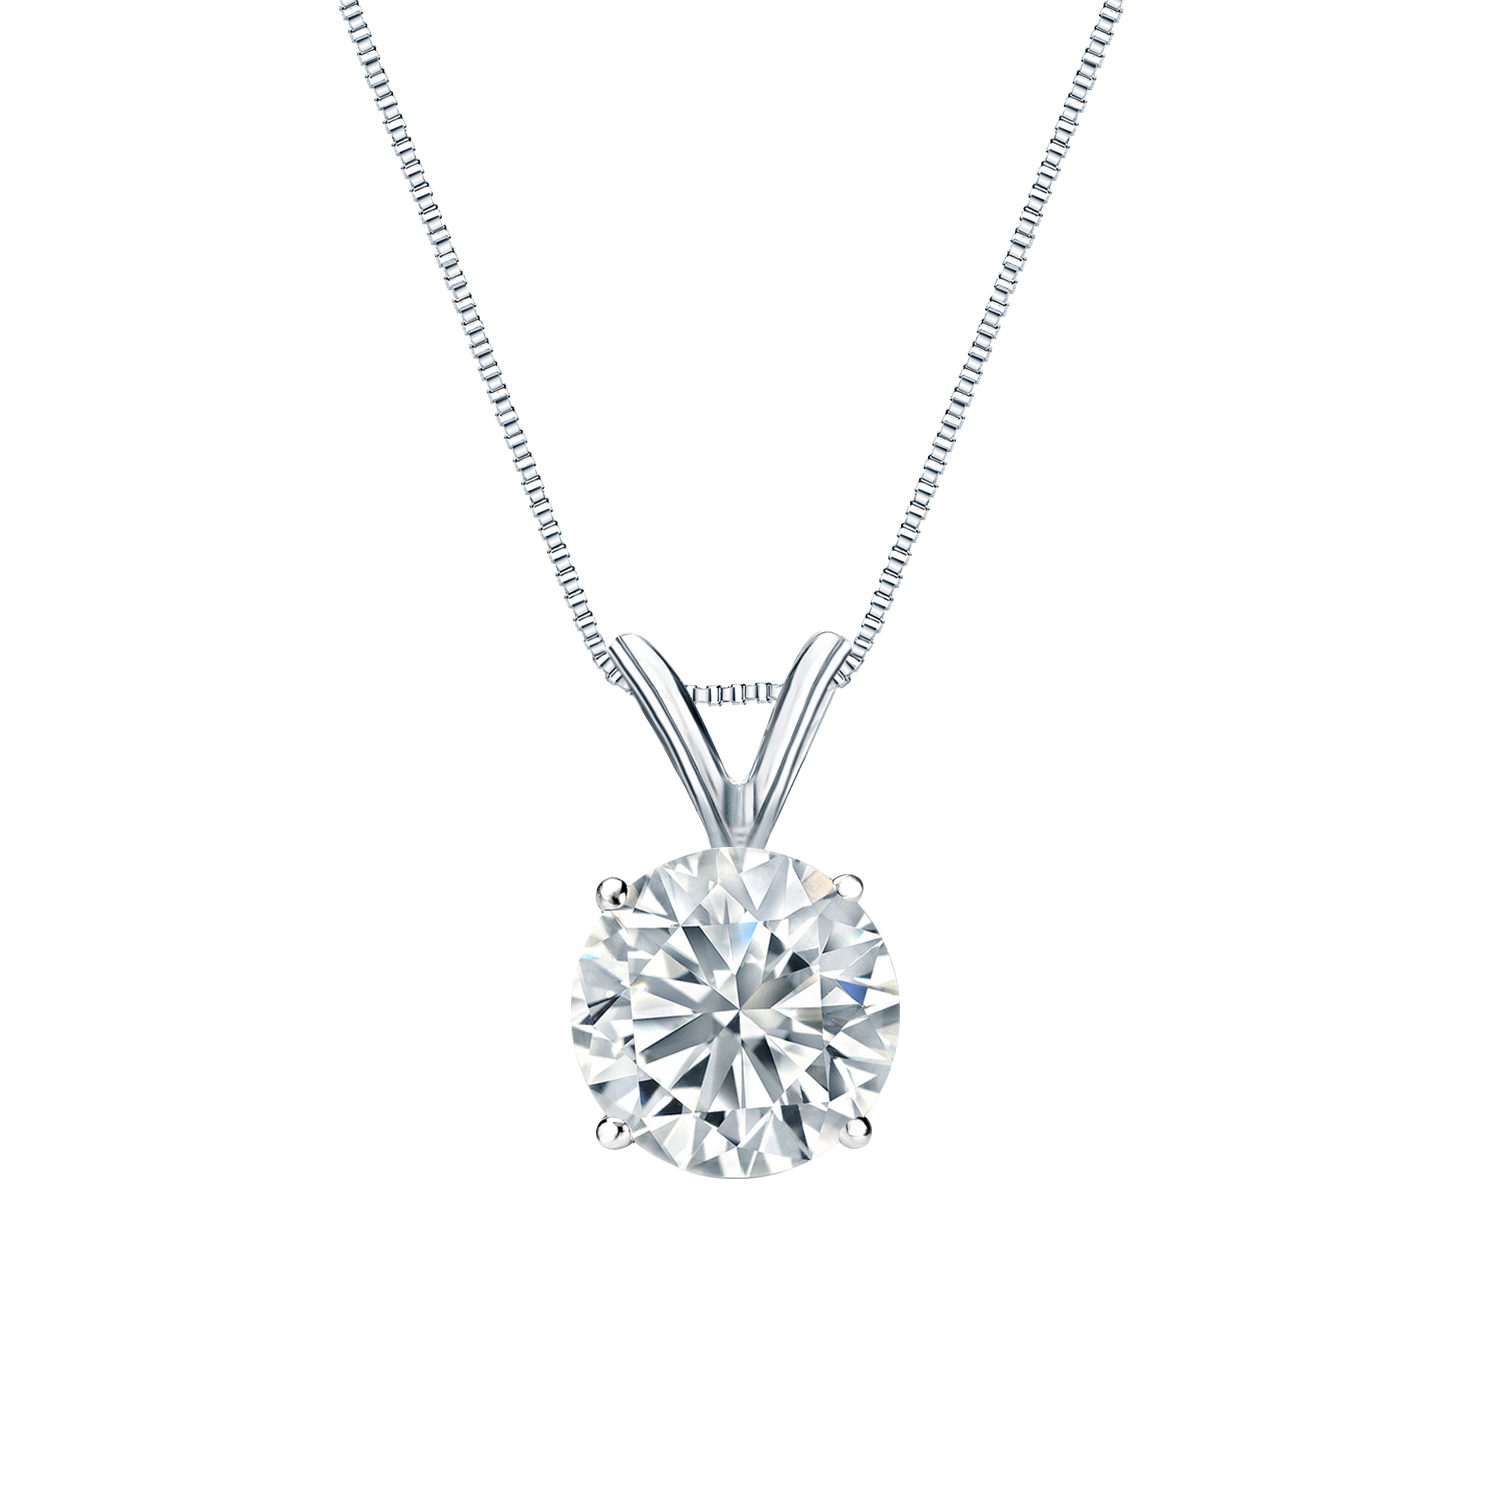 Certified 0.38 ct. tw. Round Diamond Solitaire Pendant in 14k White Gold 4-Prong Basket (G-H, VS)